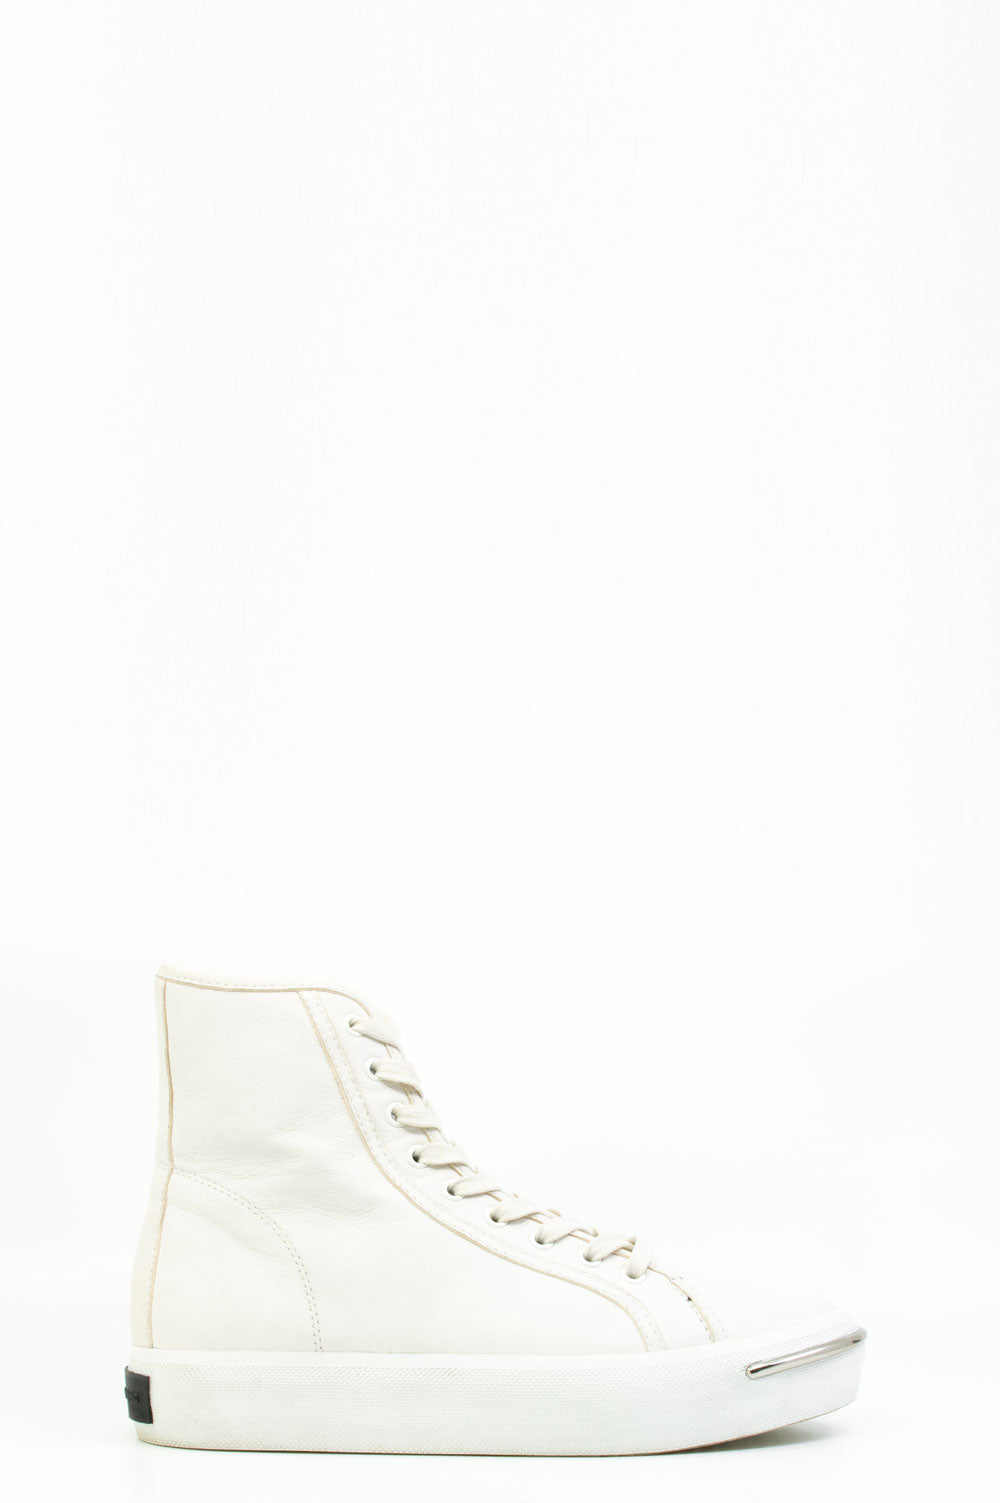 Alexander Wang High-Top Turnschuhe in weiss.